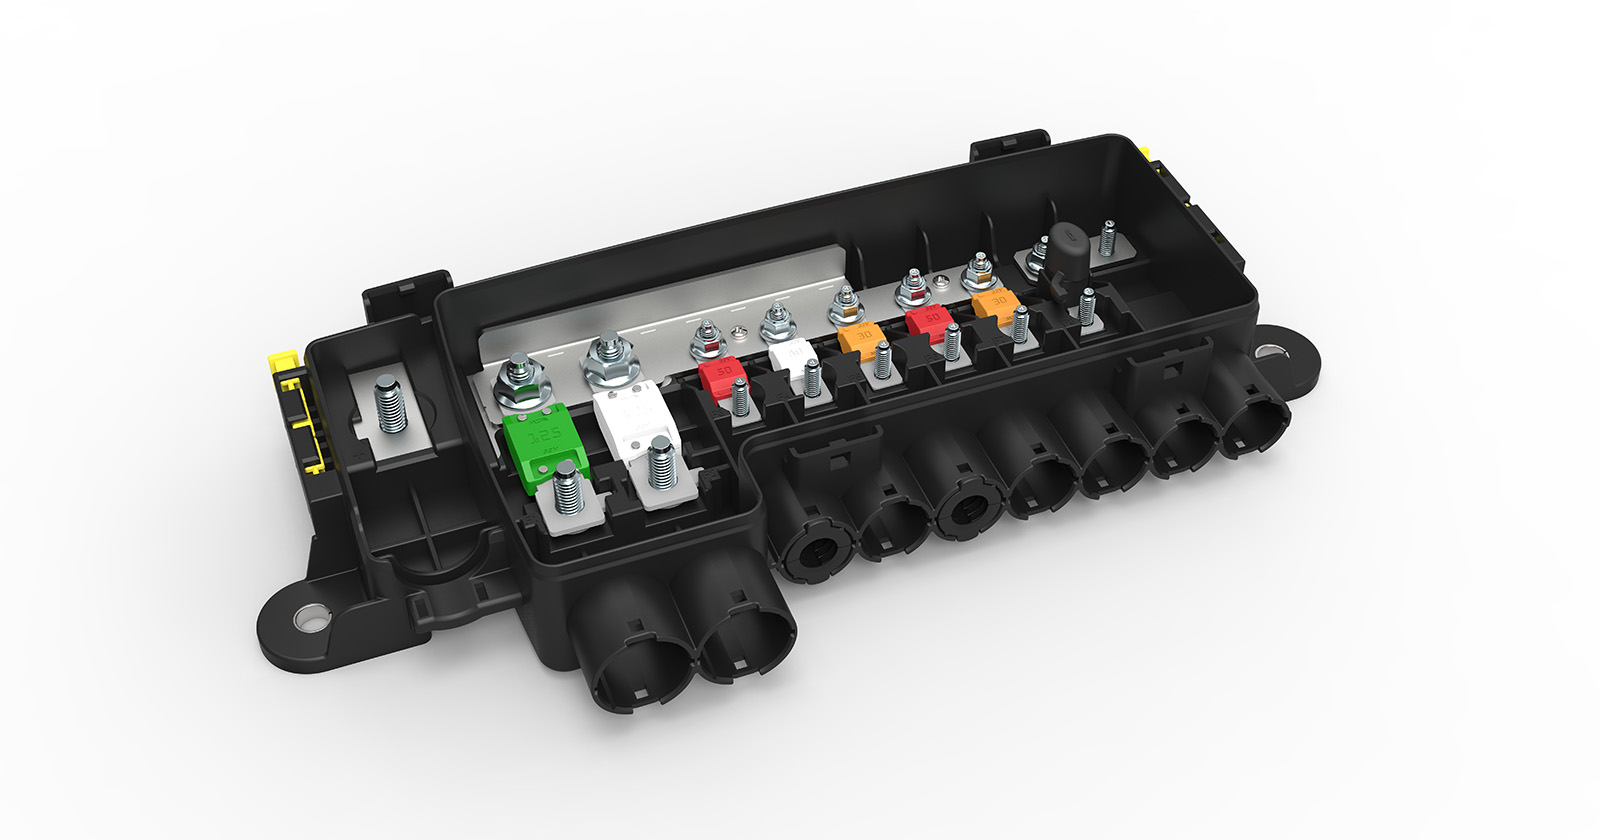 Power Distribution Module with bus-bar